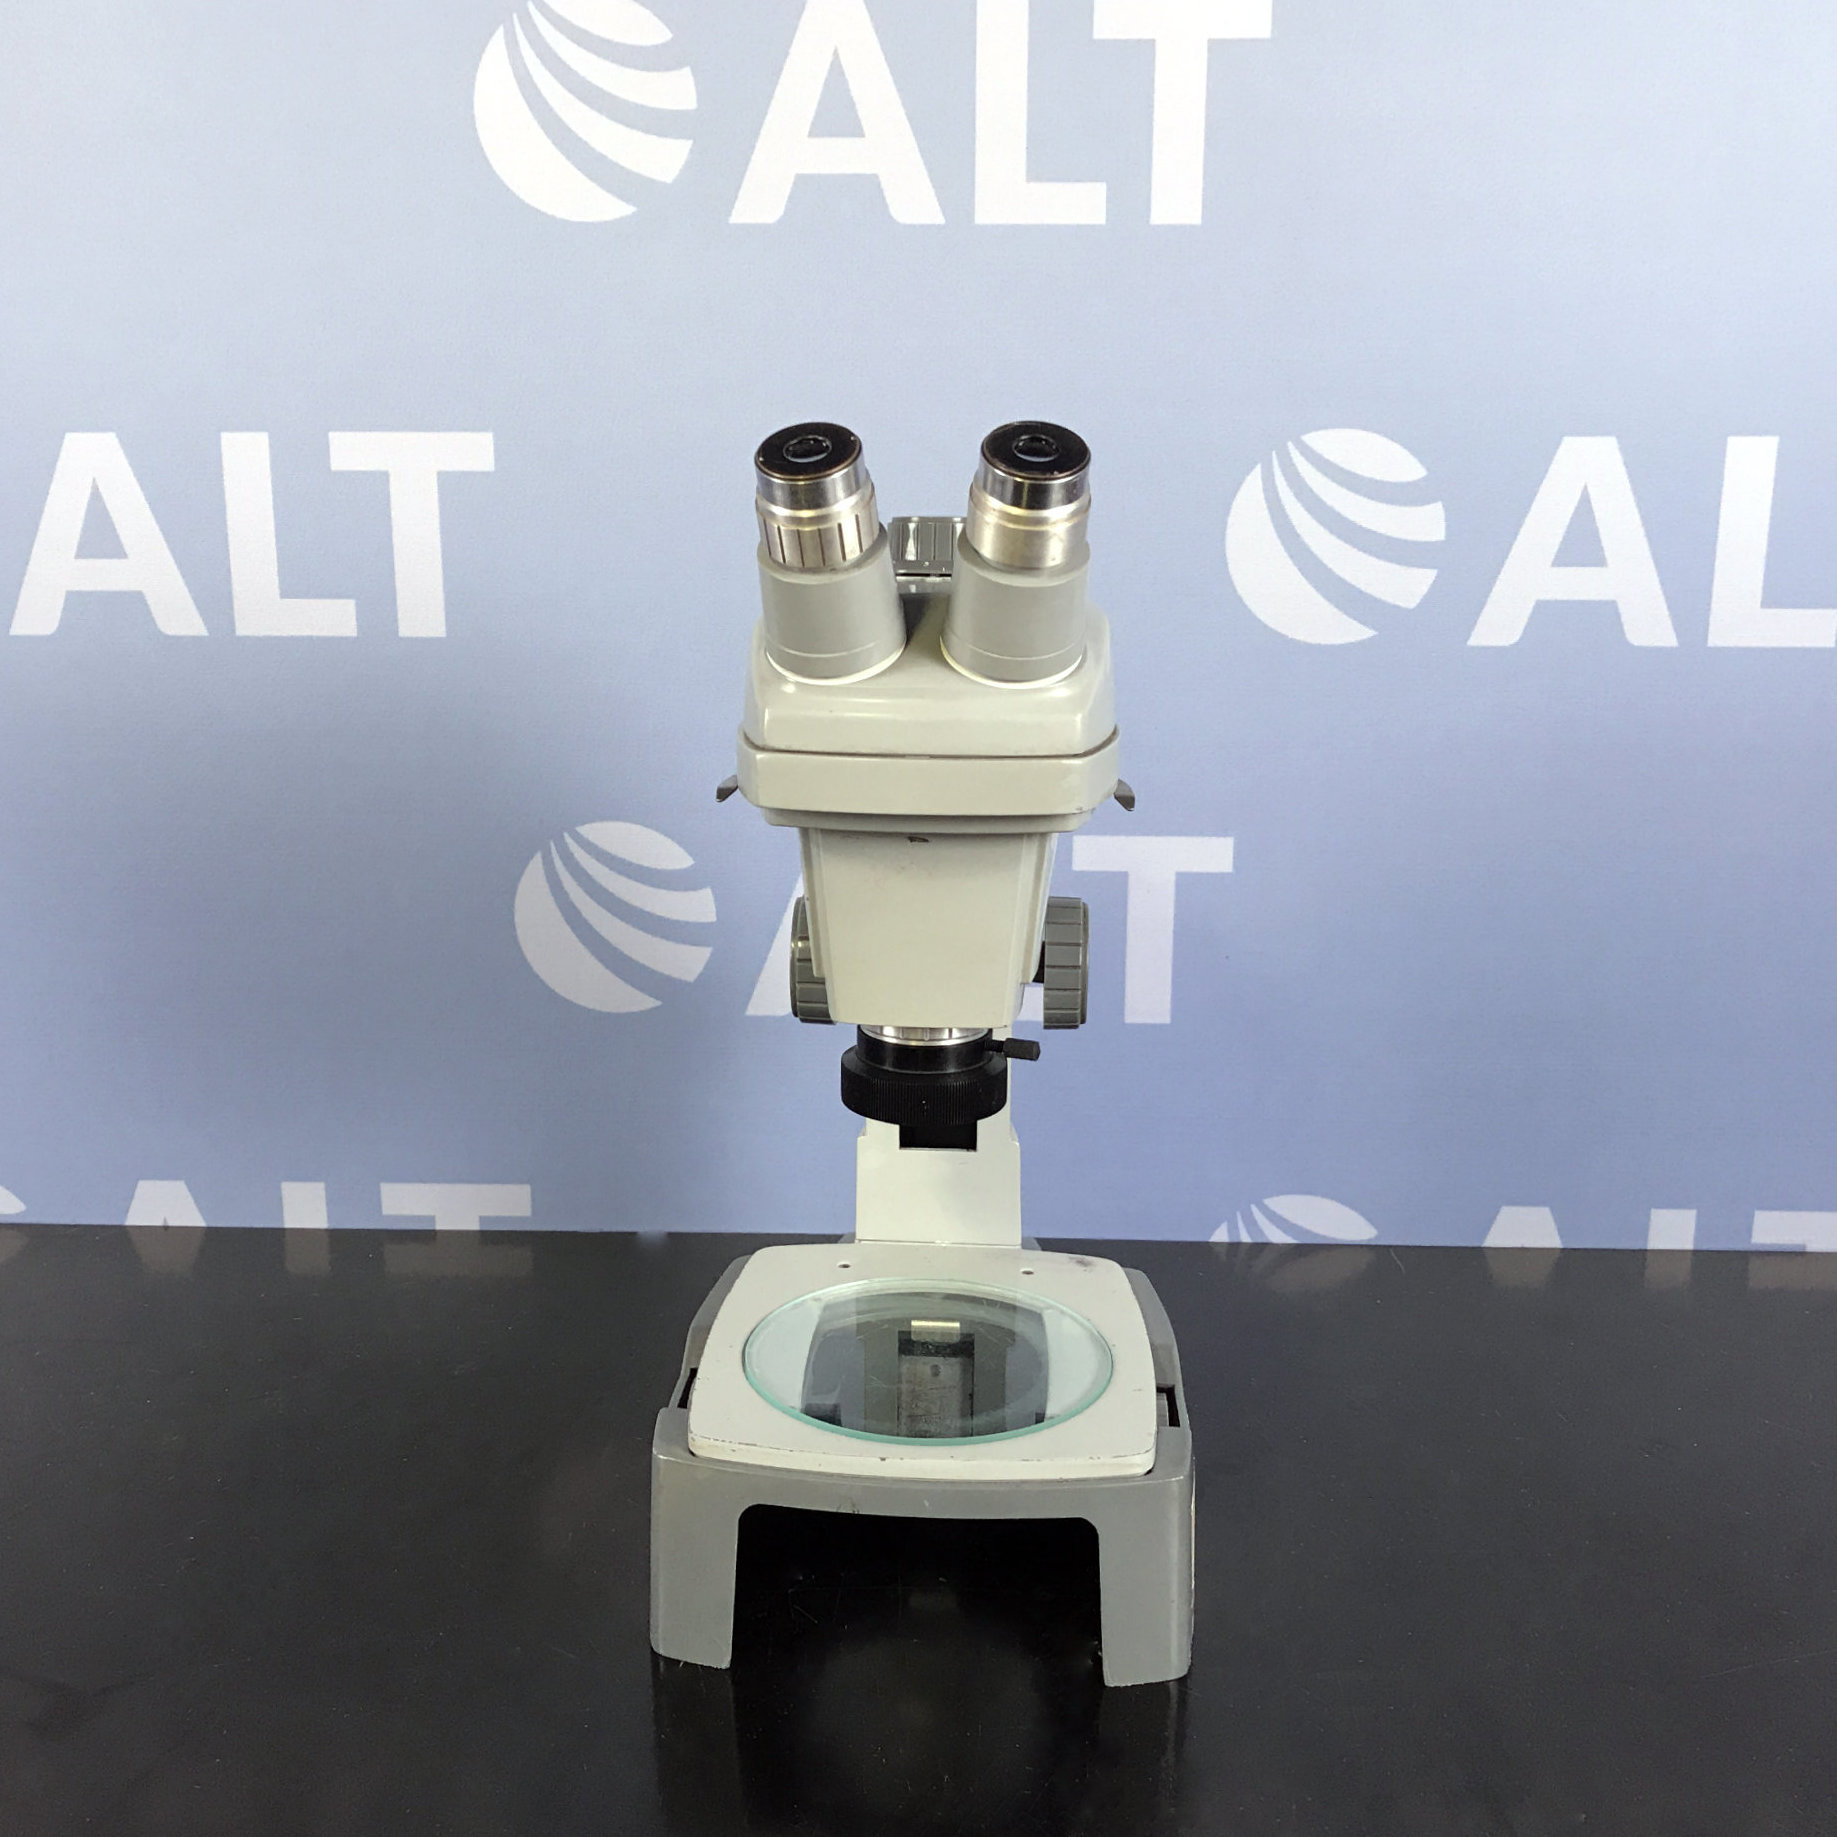 Bausch & Lomb 0.7X - 3X Stereozoom Microscope Image